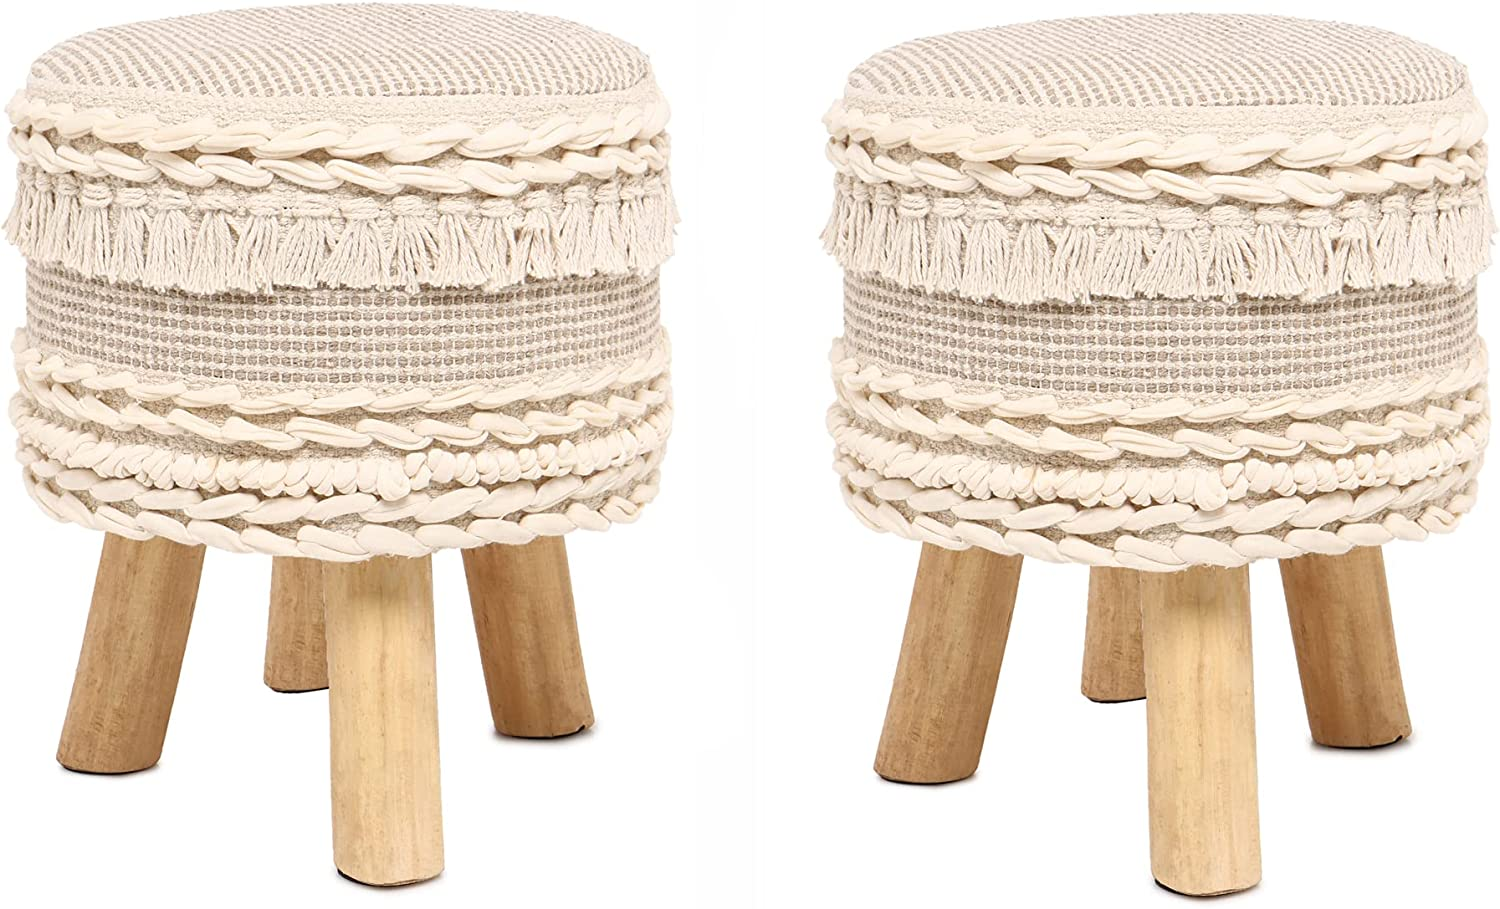 Store 5 popular REDEARTH Foot Stool -Handmade Wooden Footrest Tufted 4 Legs Seat